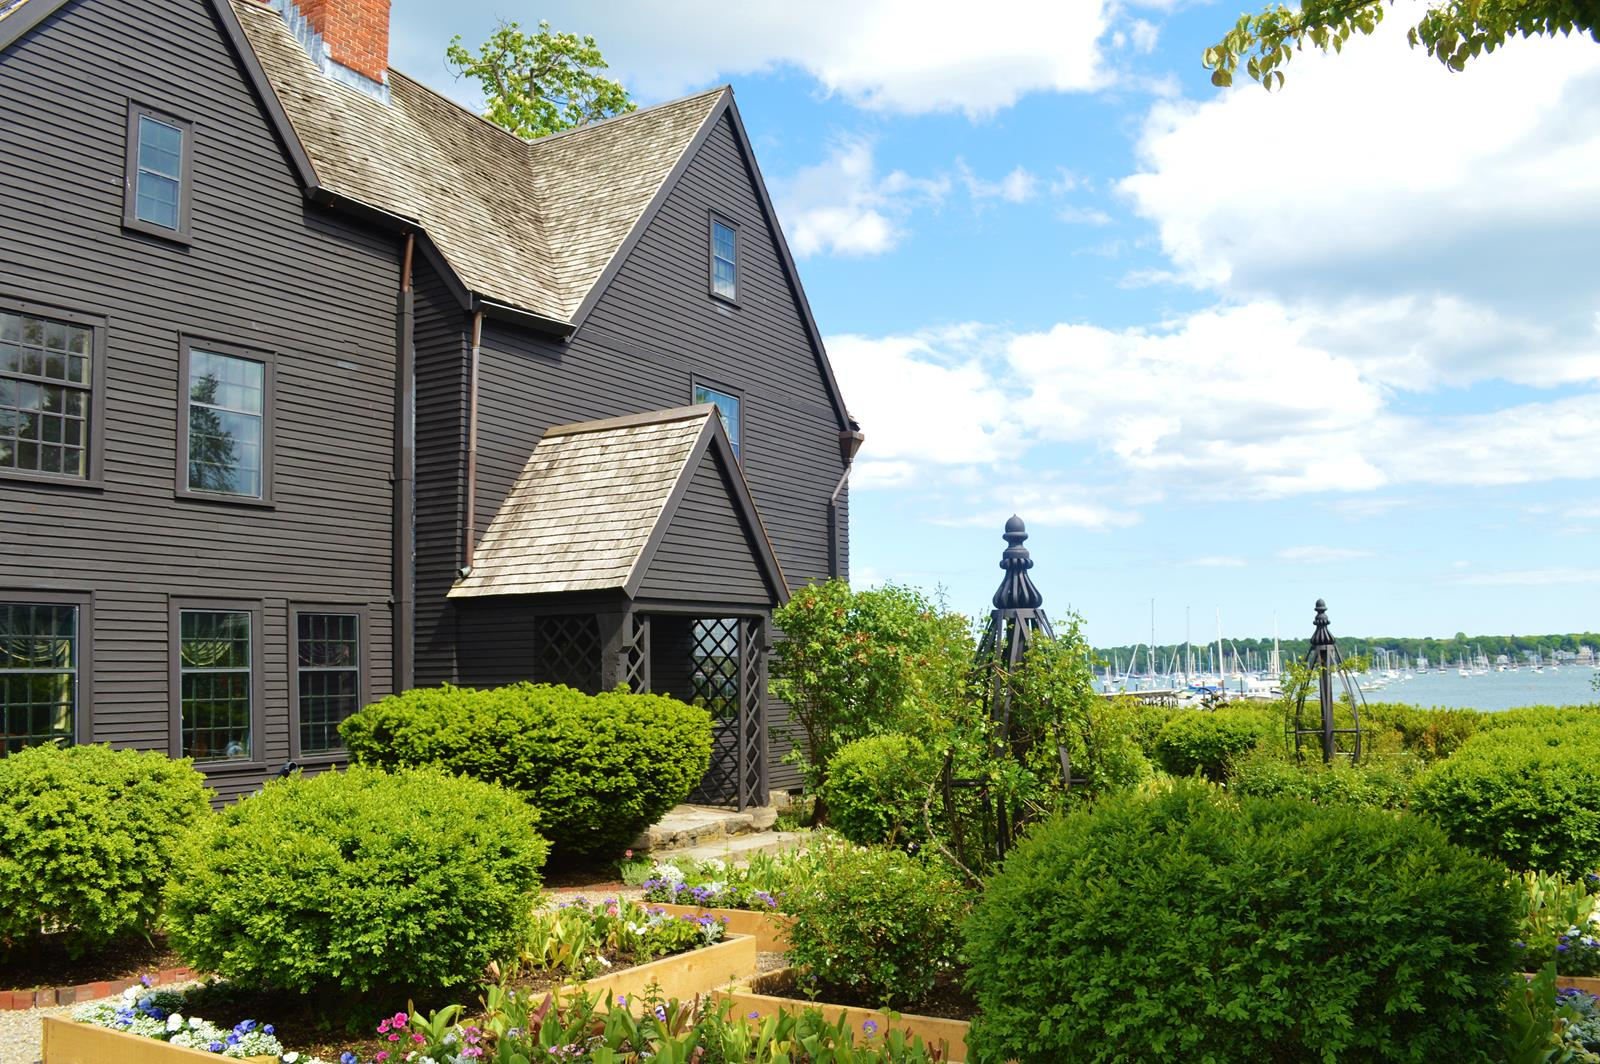 House of Seven Gables by Photo by Kristina Smith